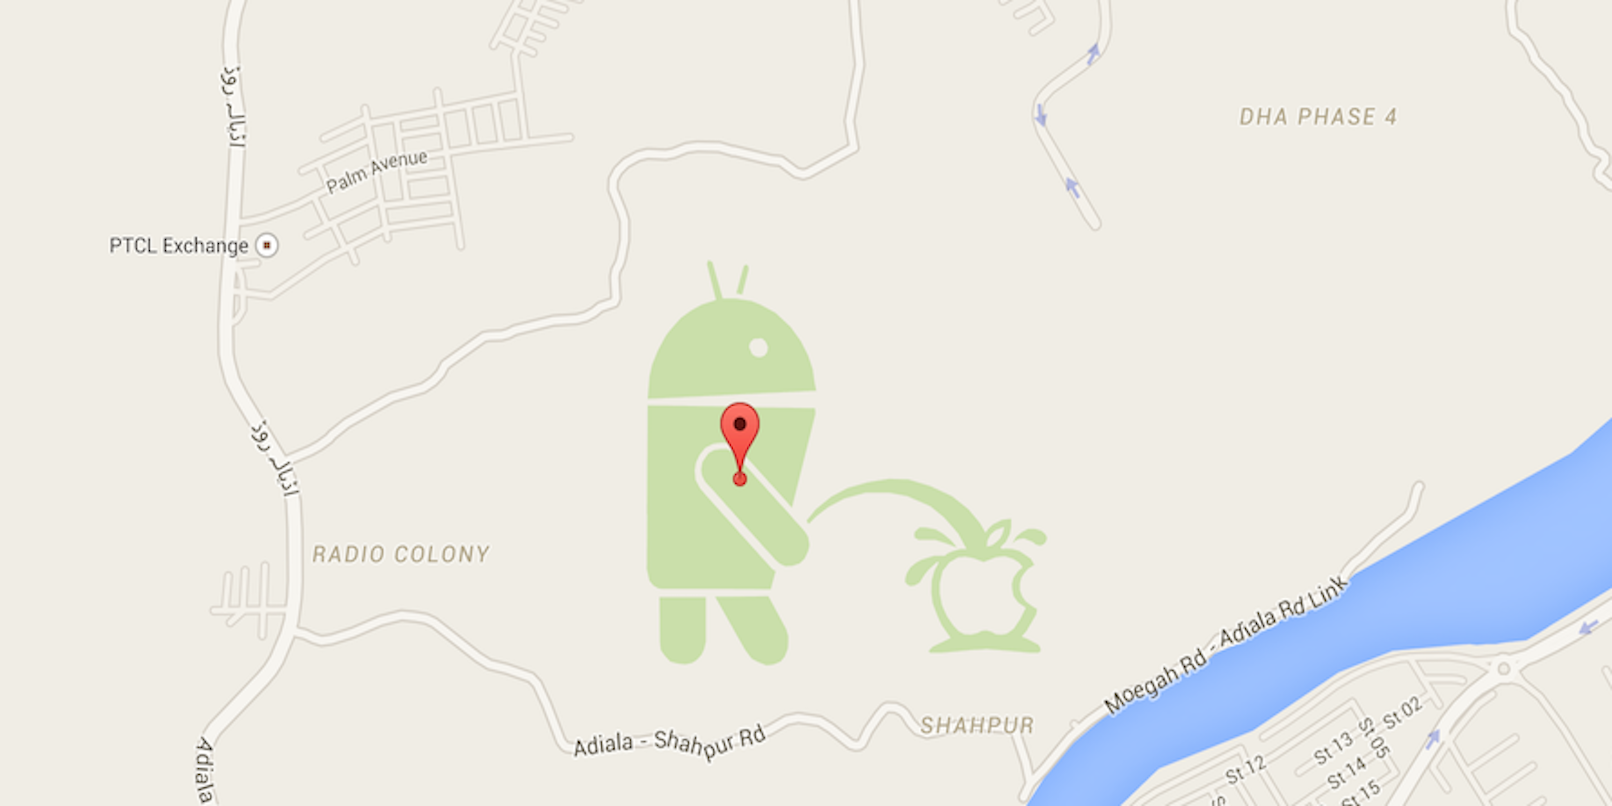 There's An Android Peeing On Apple On Google Maps